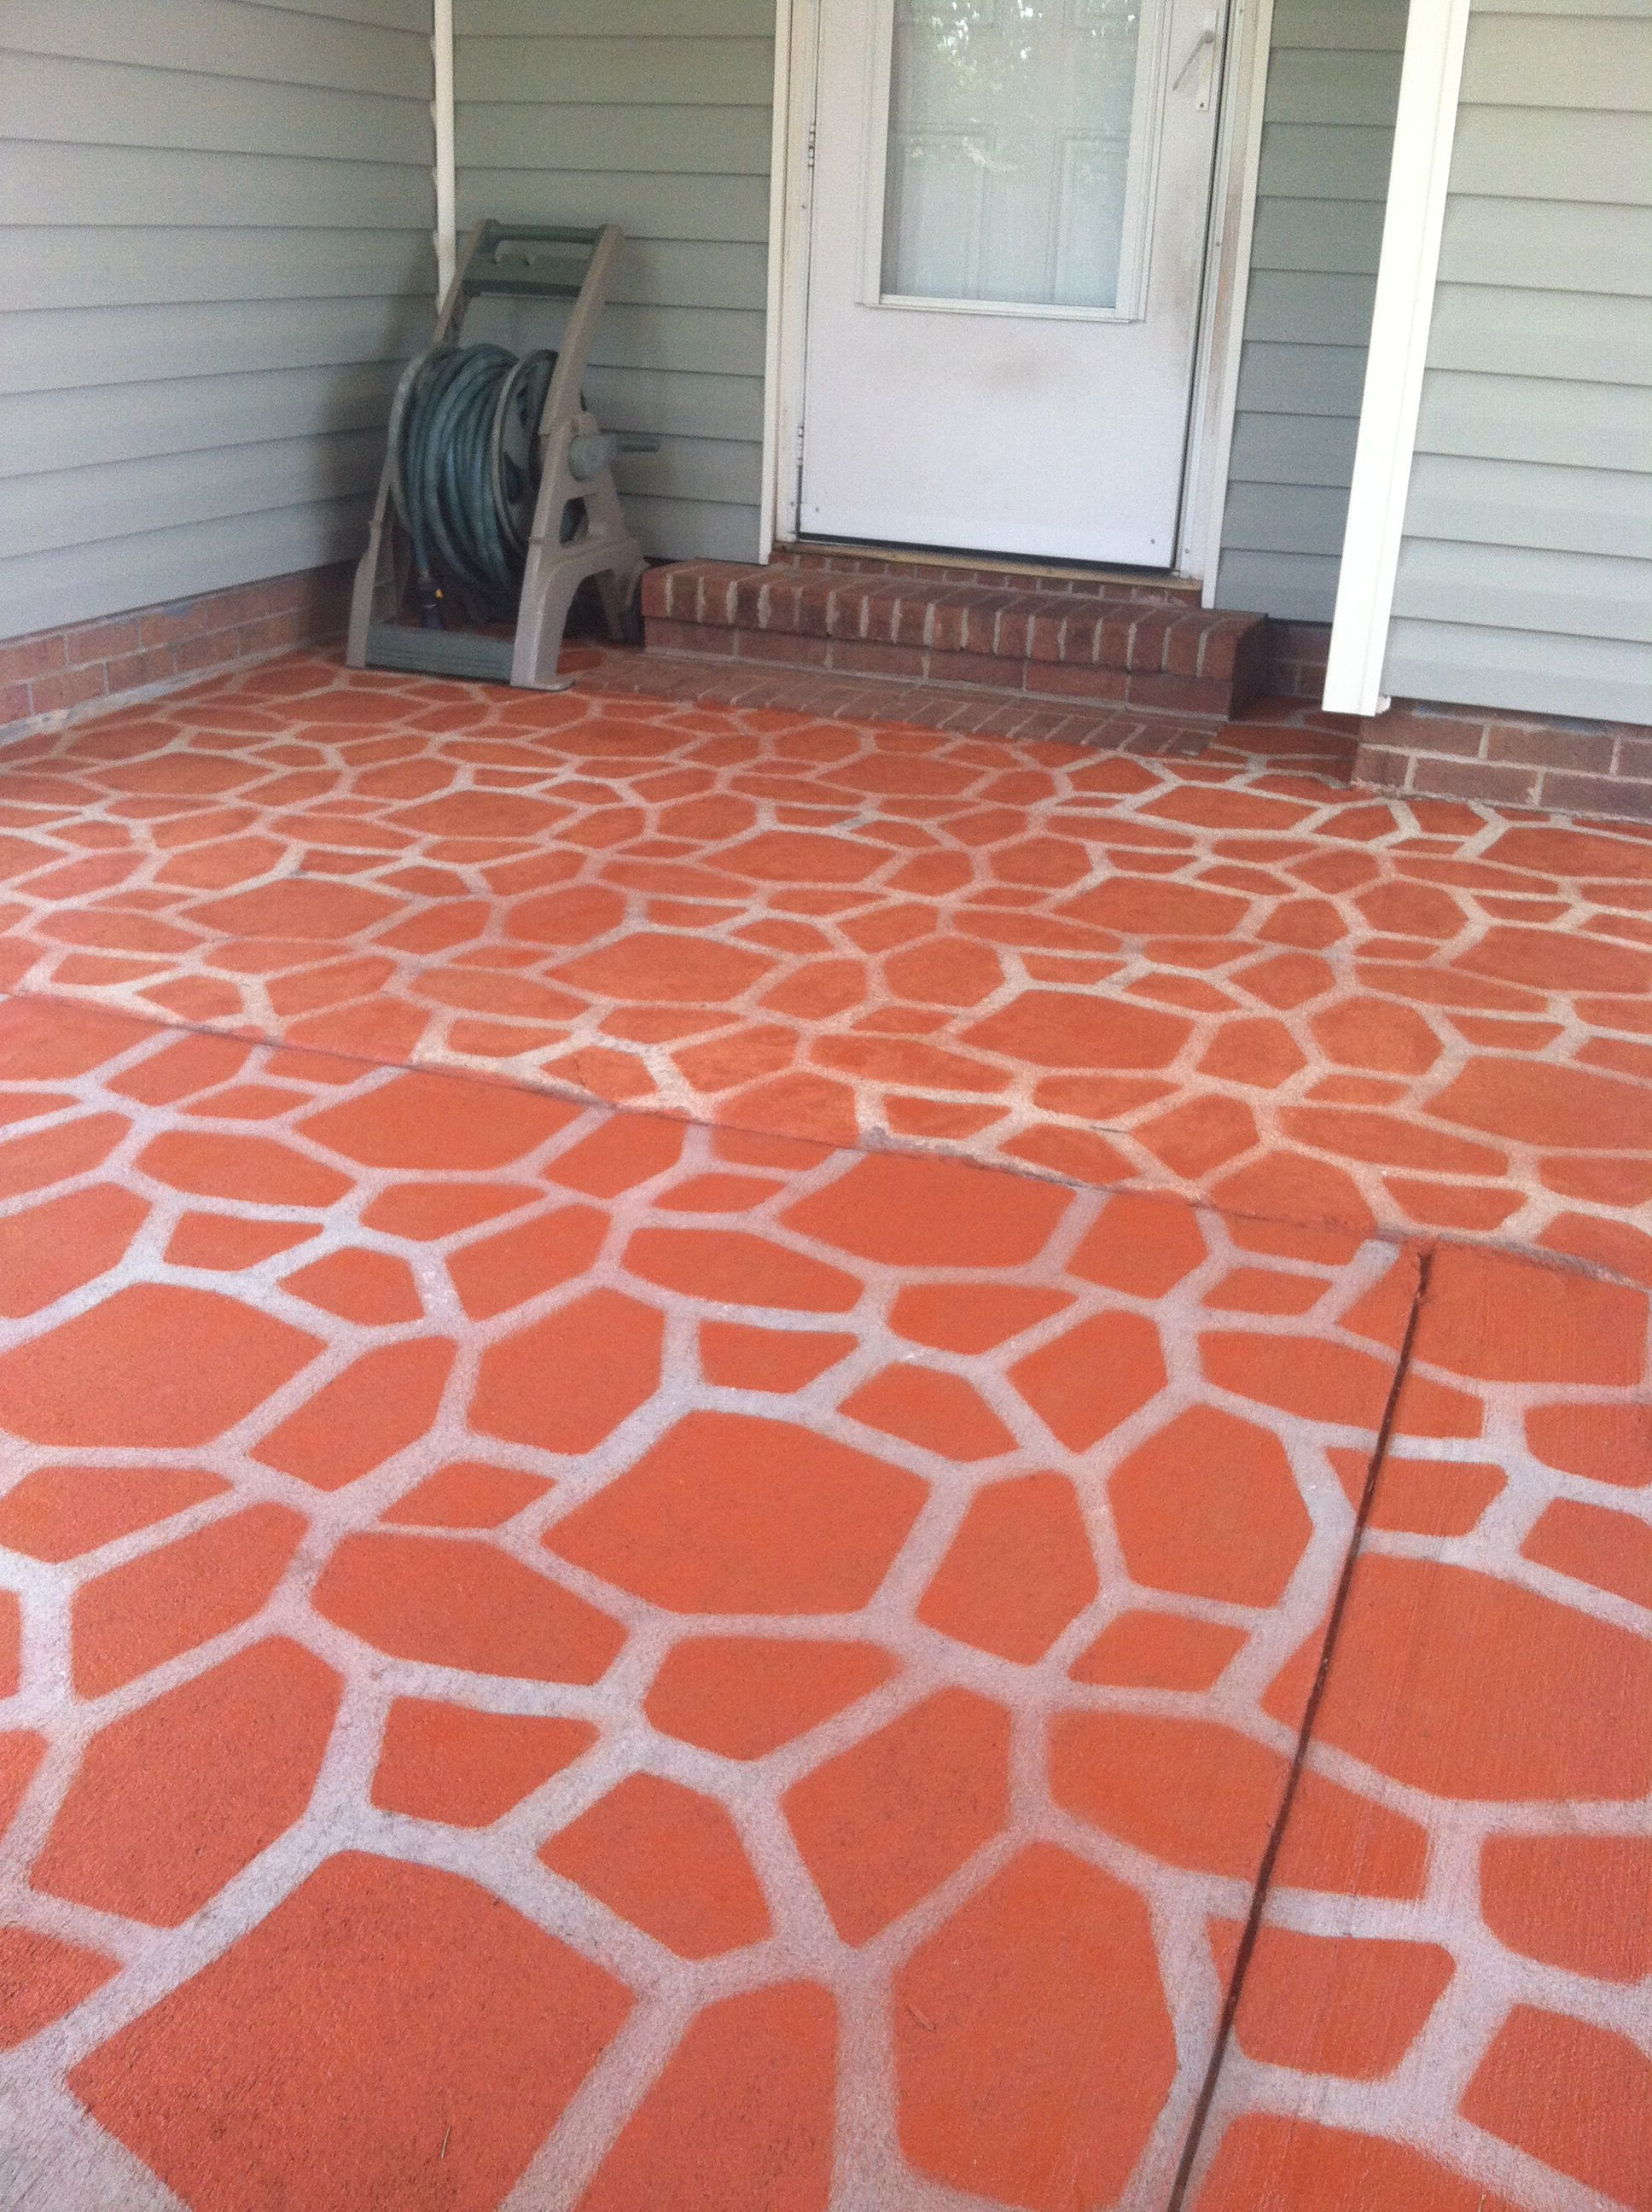 Afterspray painted my patio with a mold made for